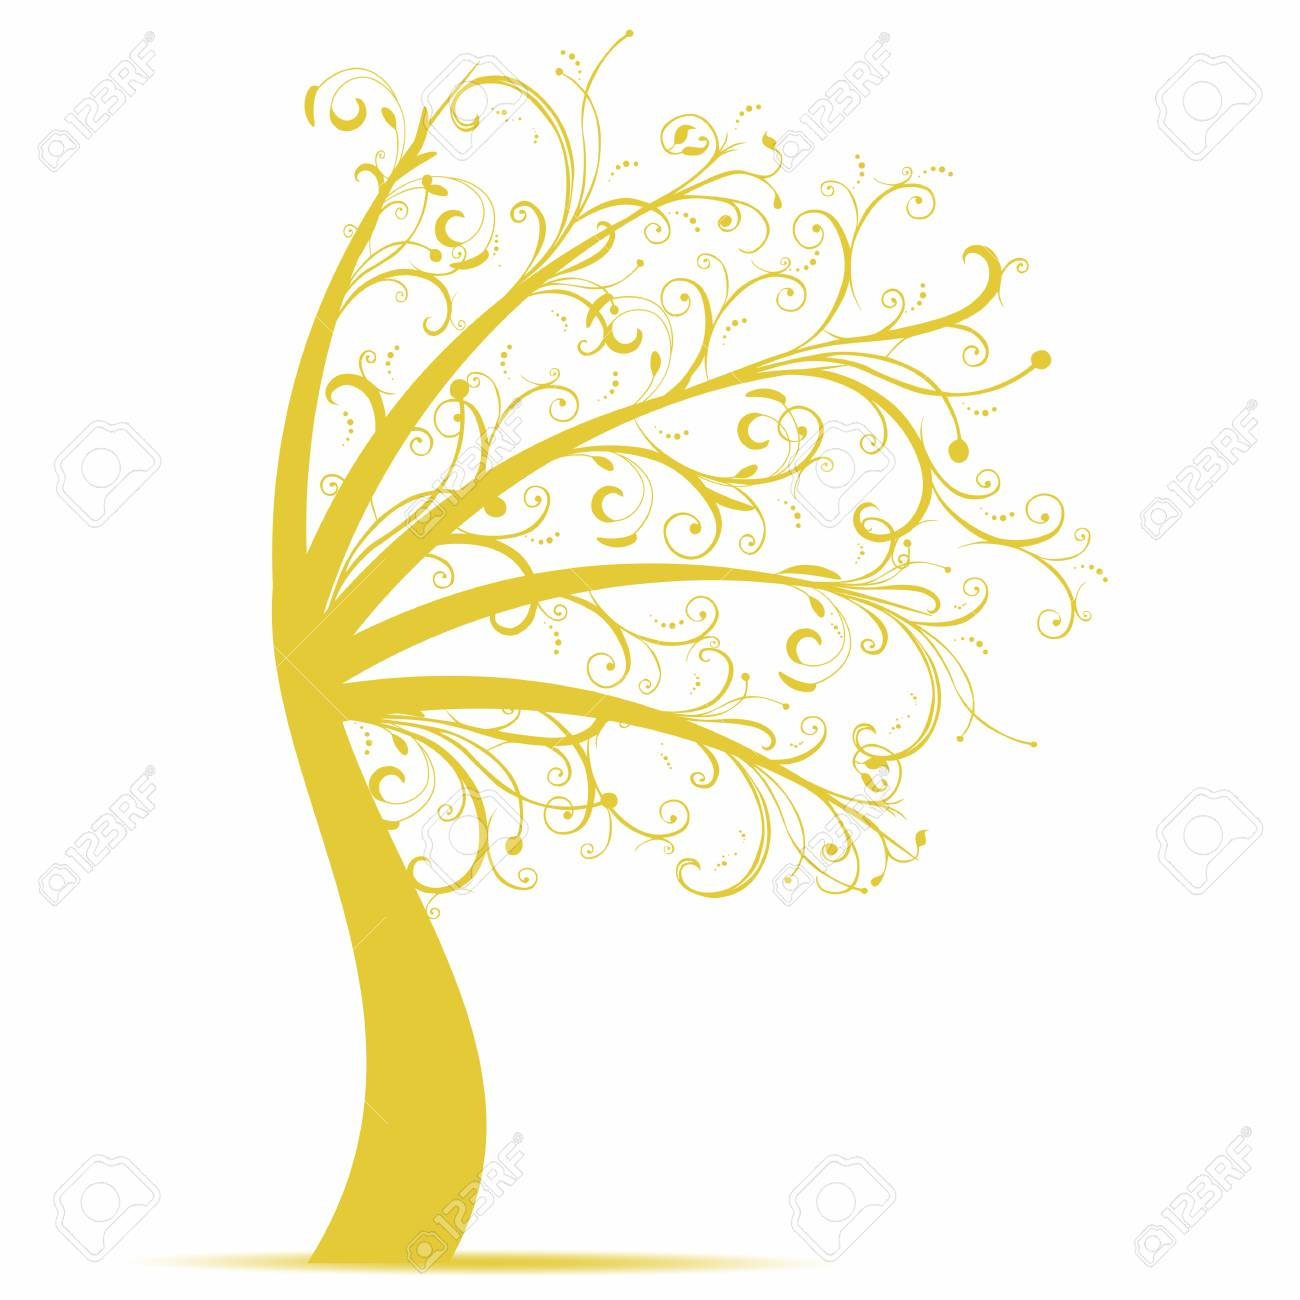 Beautiful art tree isolated on white background Stock Vector - 10598579